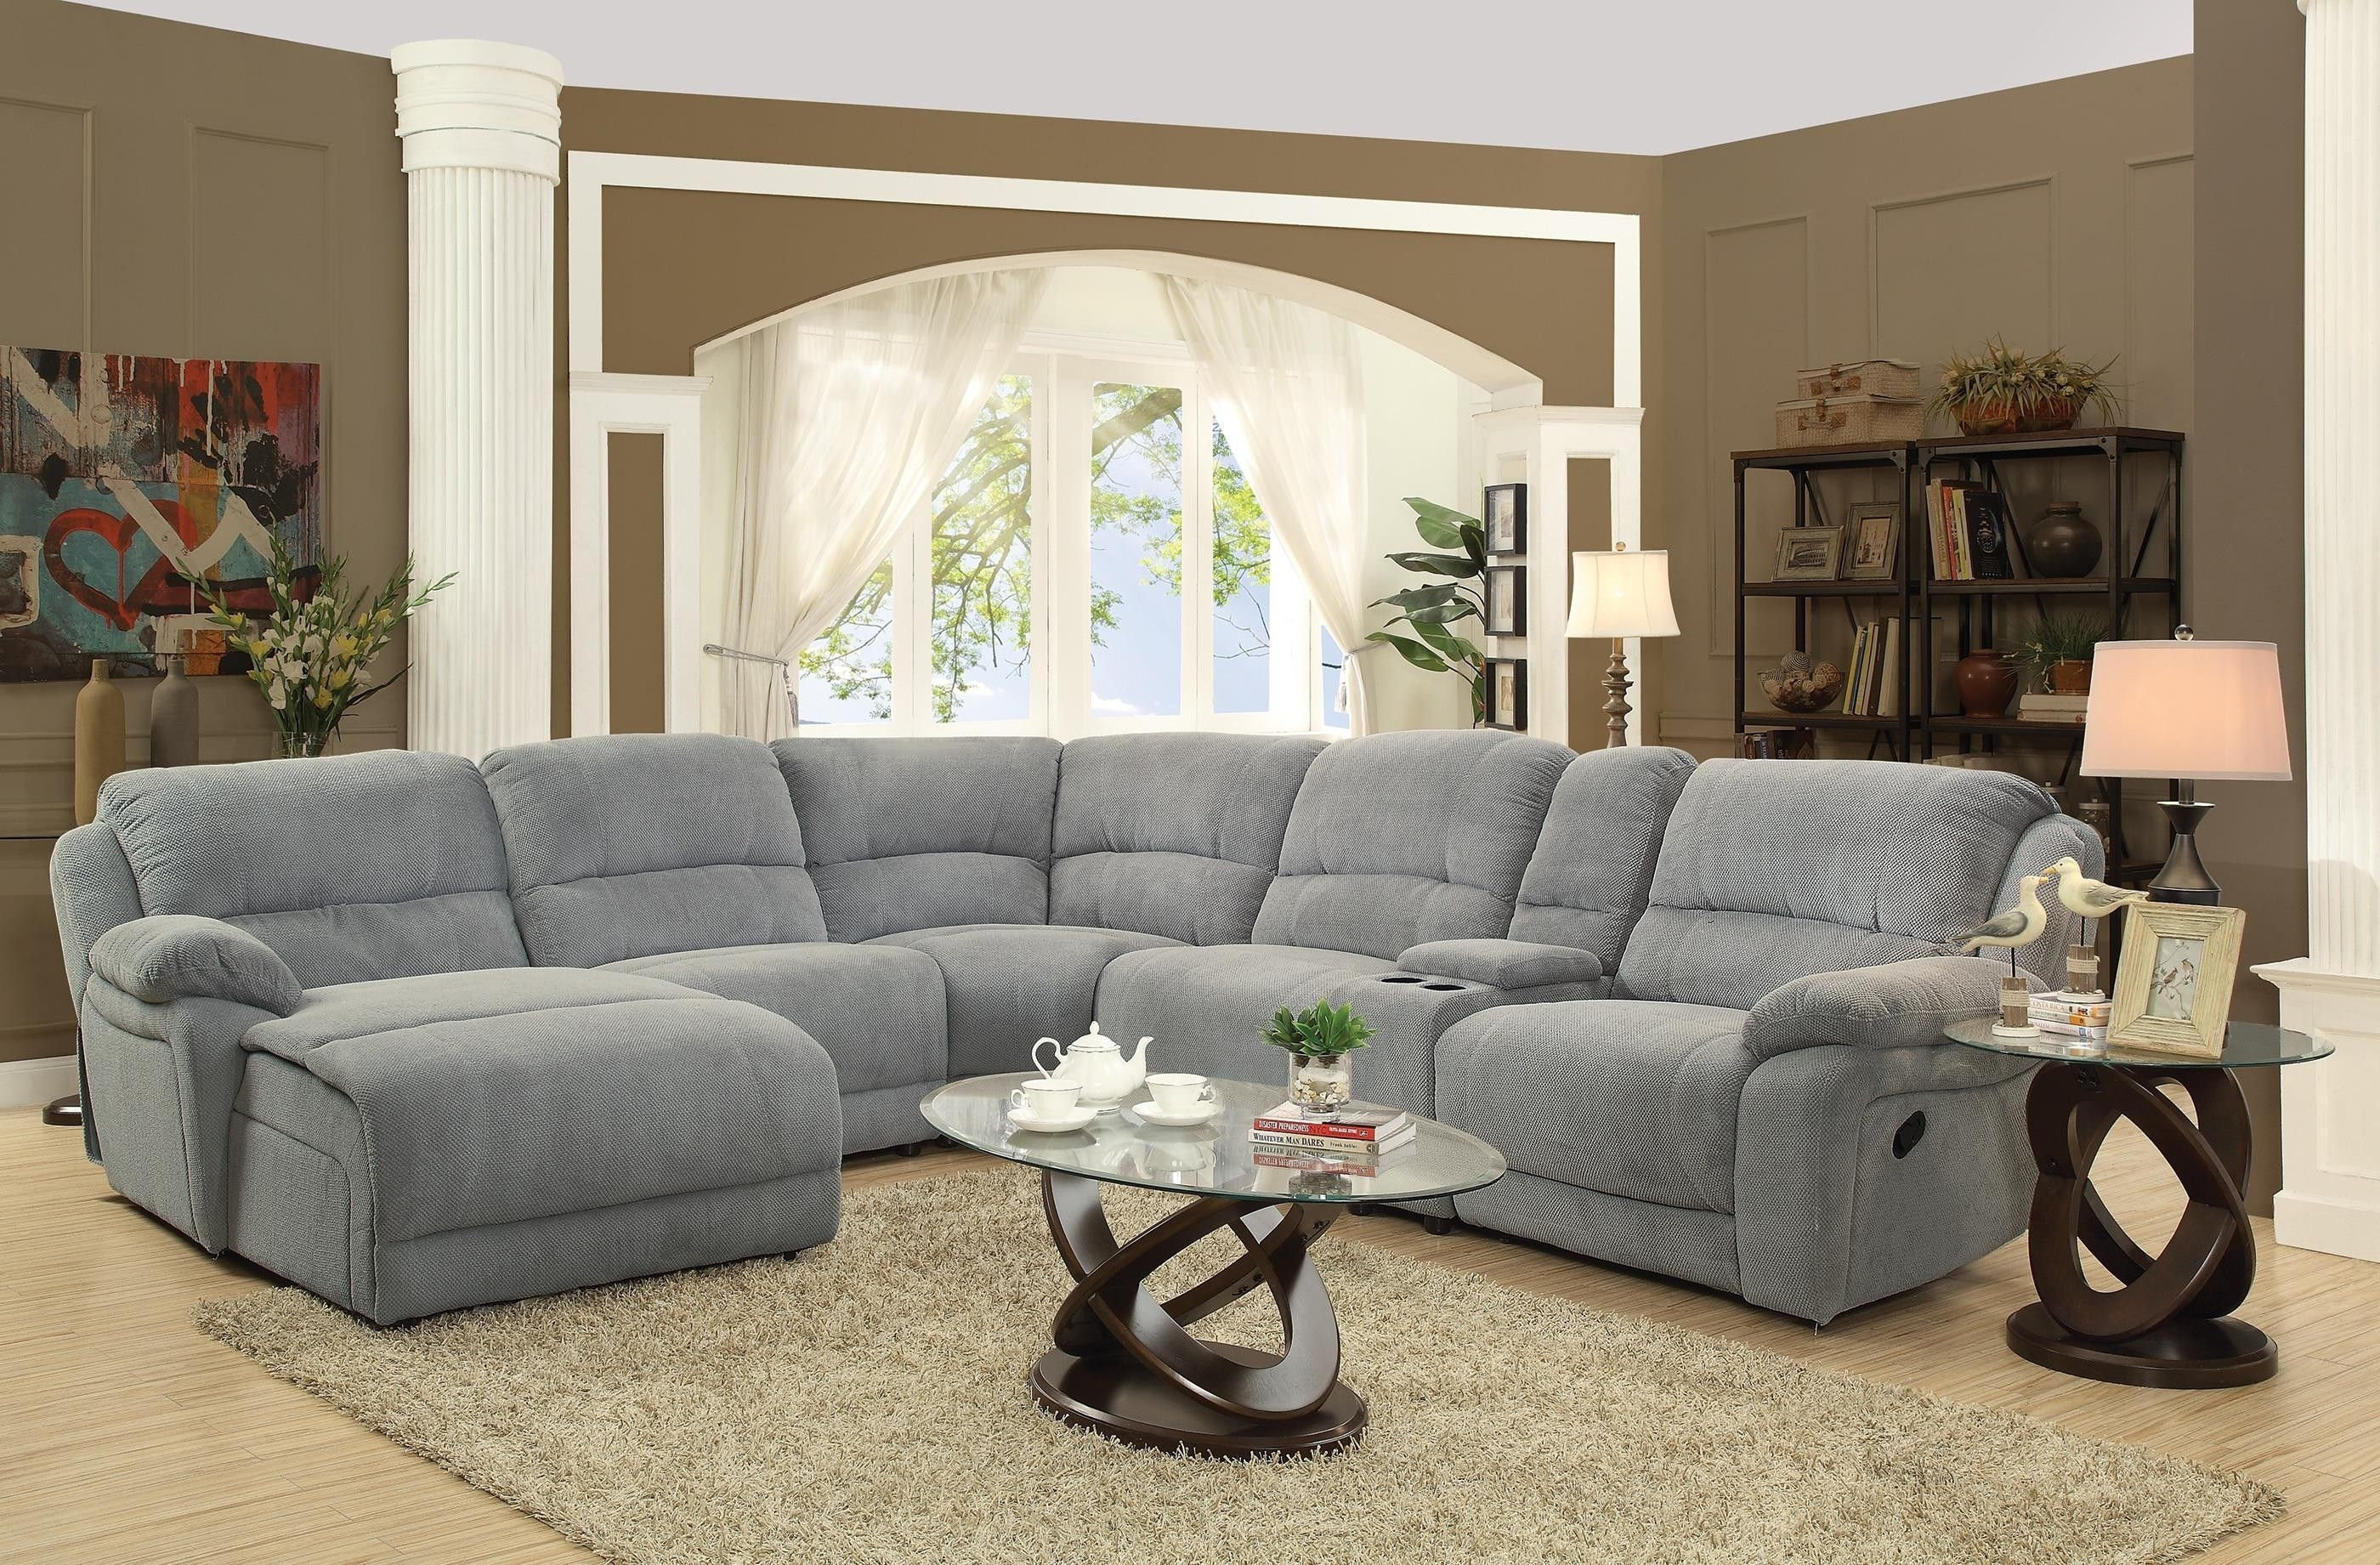 6 Piece Reclining Sectional Sofa | Baci Living Room Within Denali Light Grey 6 Piece Reclining Sectionals With 2 Power Headrests (Image 2 of 25)